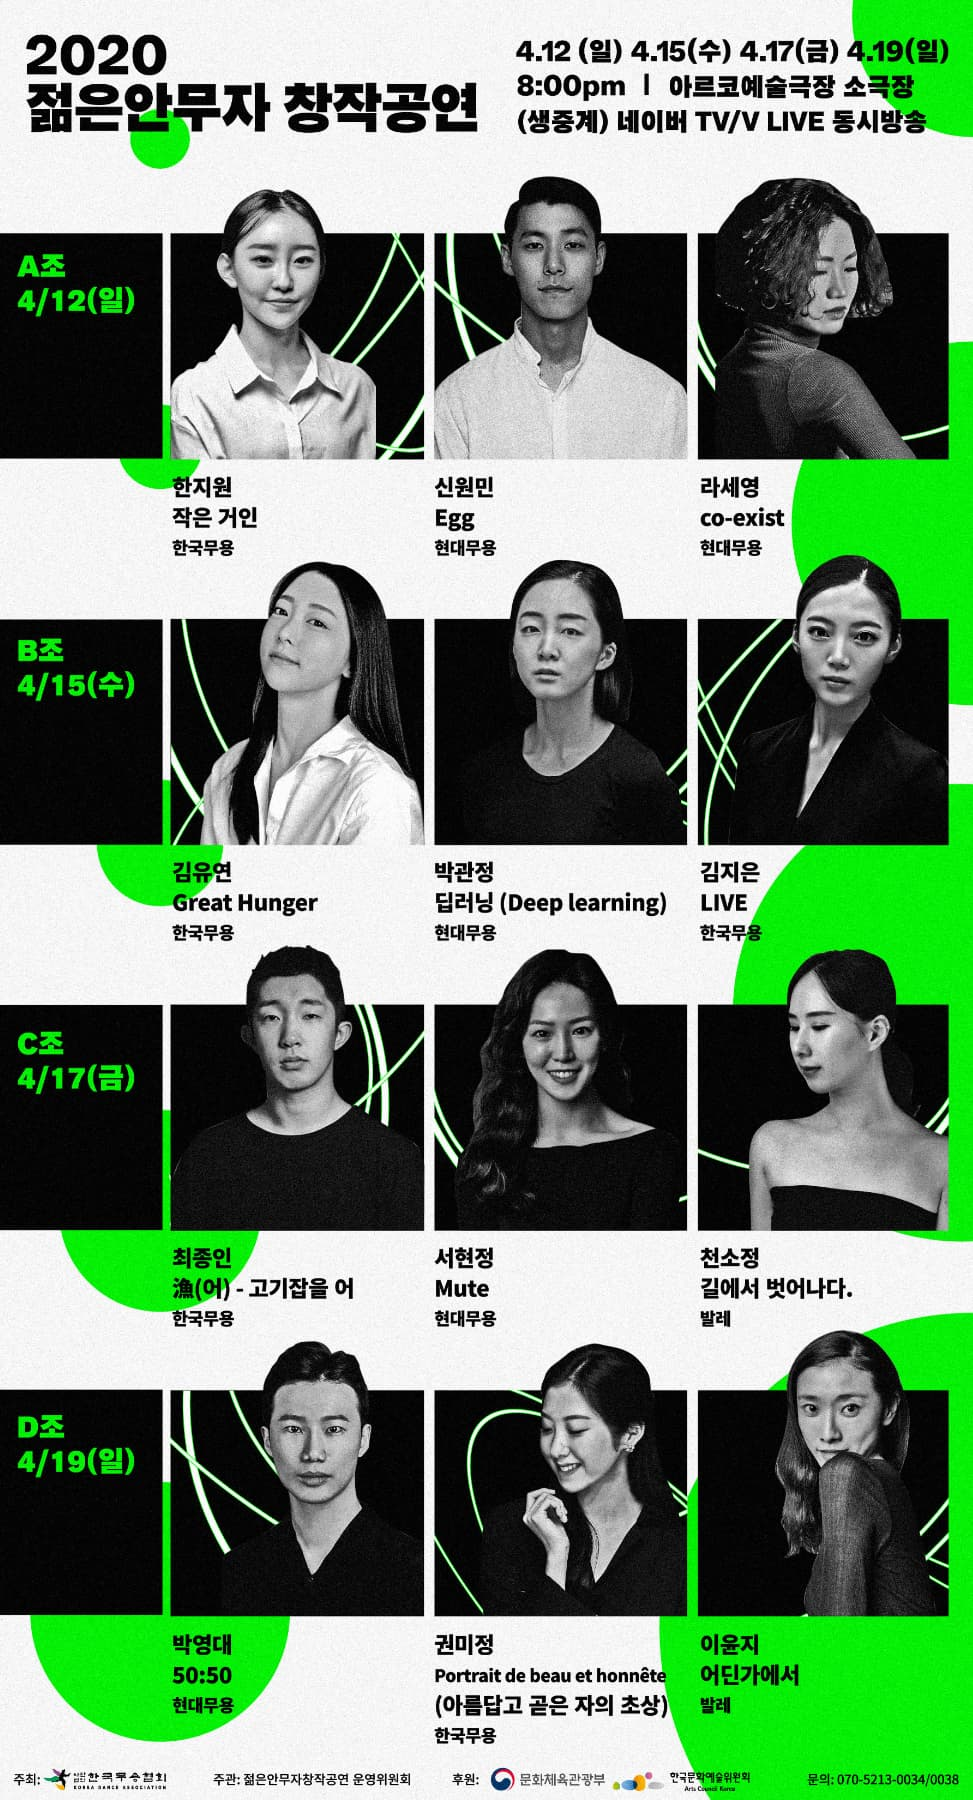 2020 젊은 안무자 창작공연 (2020 Young Choreographers Creative Performance)